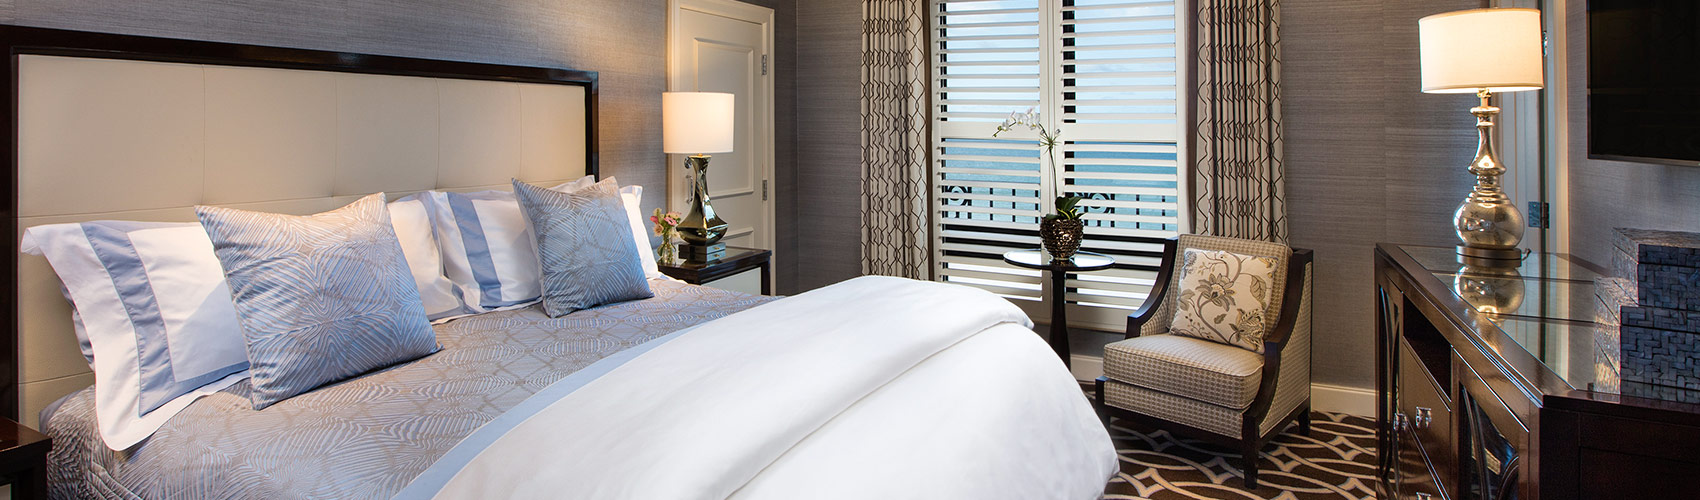 Flagler Club Guest Room with Ocean View